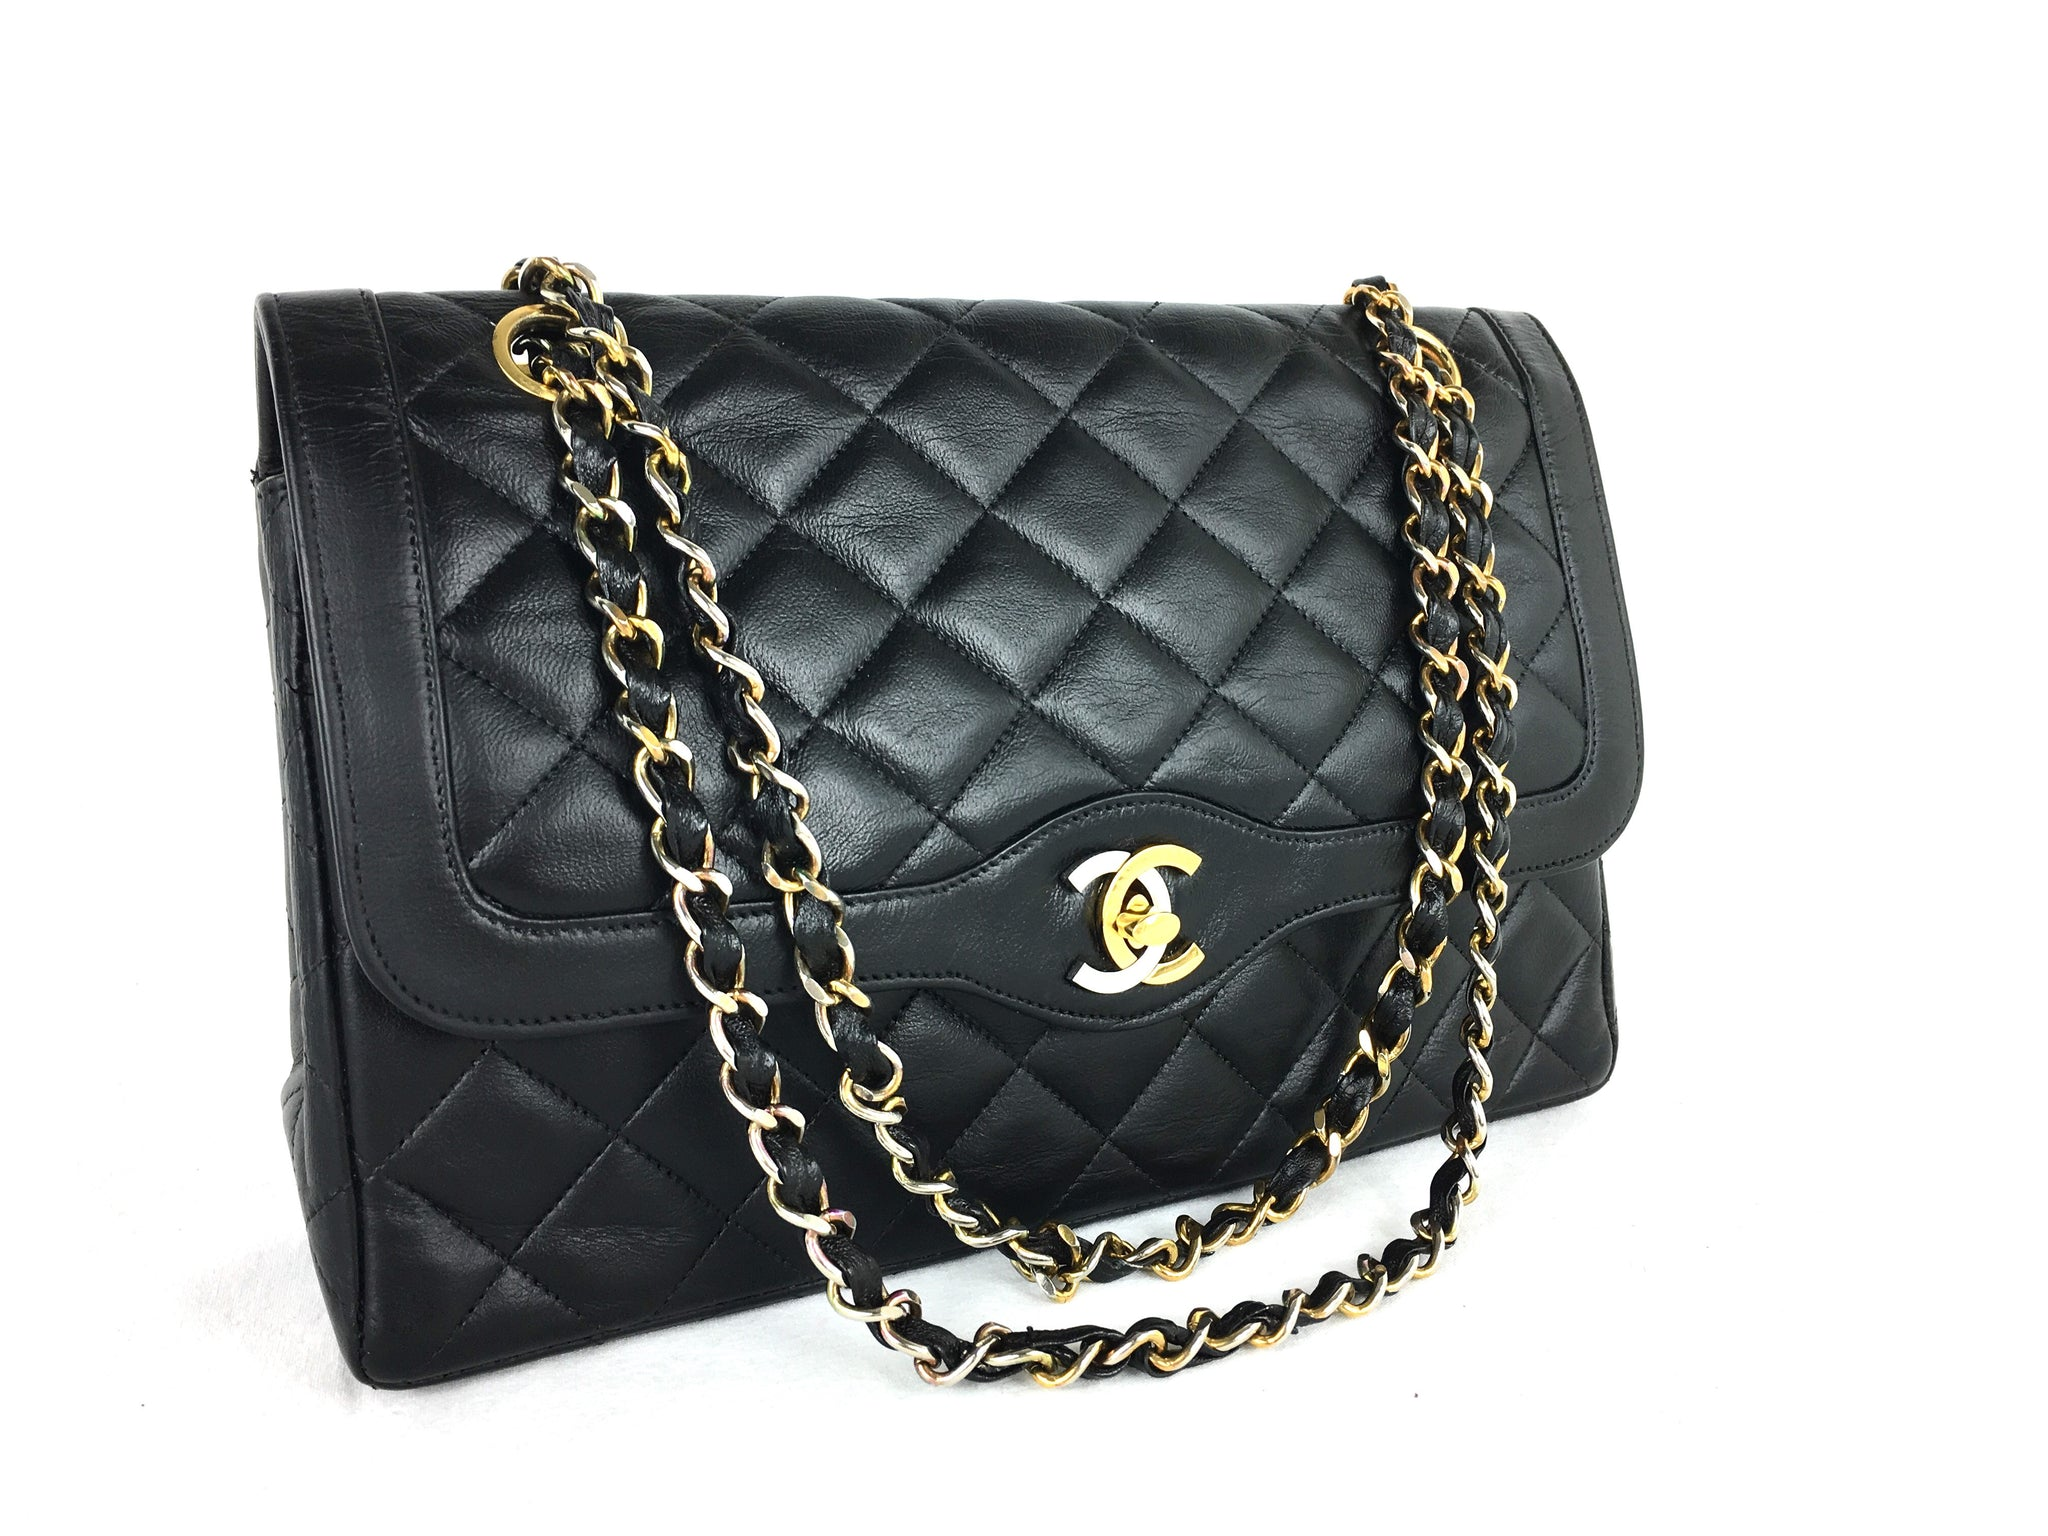 CHANEL Paris Limited Edition 2.55 Double Flap Vintage Bag